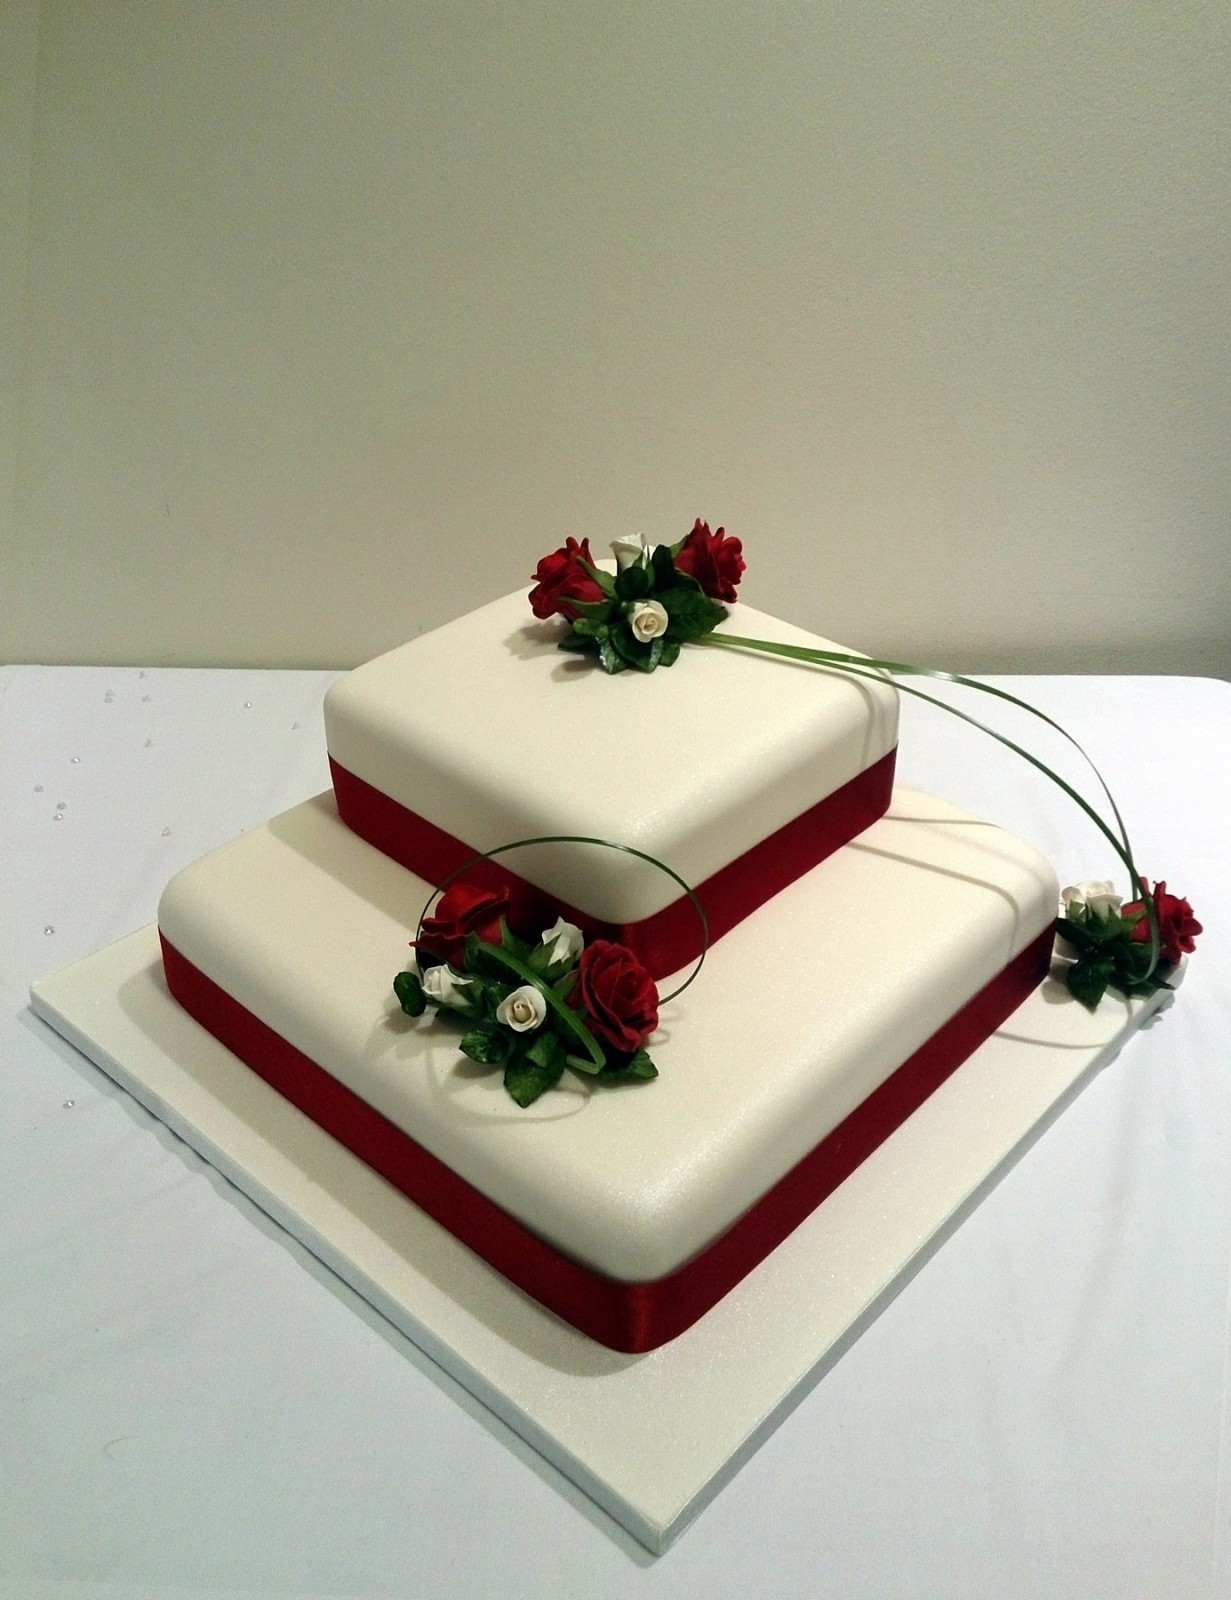 Wedding Cake Images Square : 2 Tier Square Stacked Wedding Cake With Deep Red Rose ...